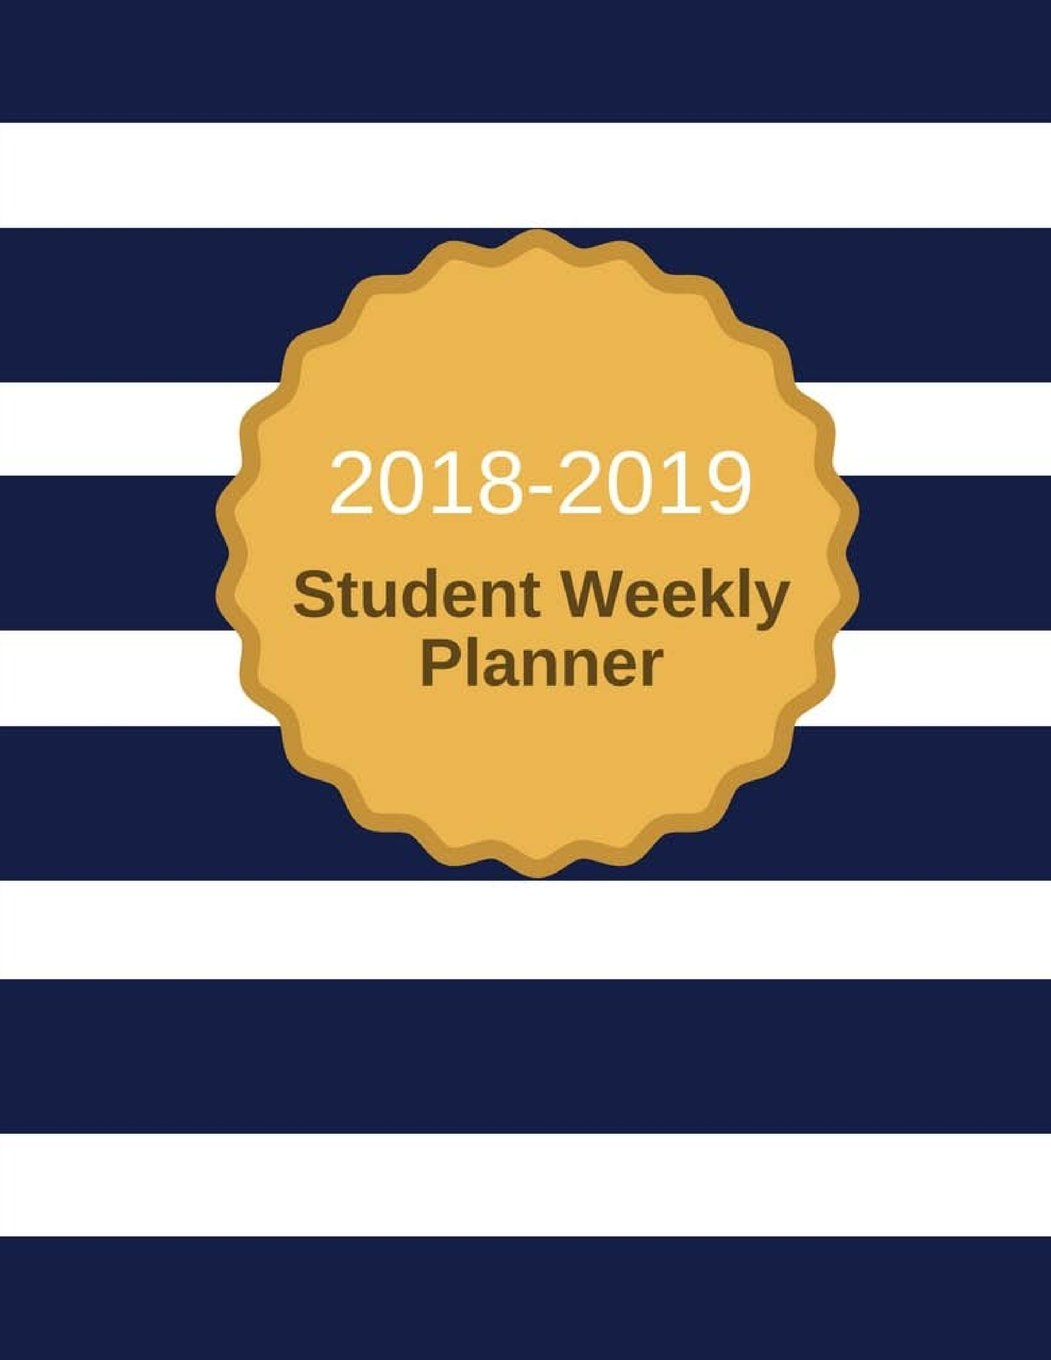 2018-2019 Student Weekly Planner: Weekly Assignment Organizer,Calendar,Course Assignment, Activity and To-Do-List 123 Pages 8.5x11 Inches (Gift) (Volume 2) pdf epub